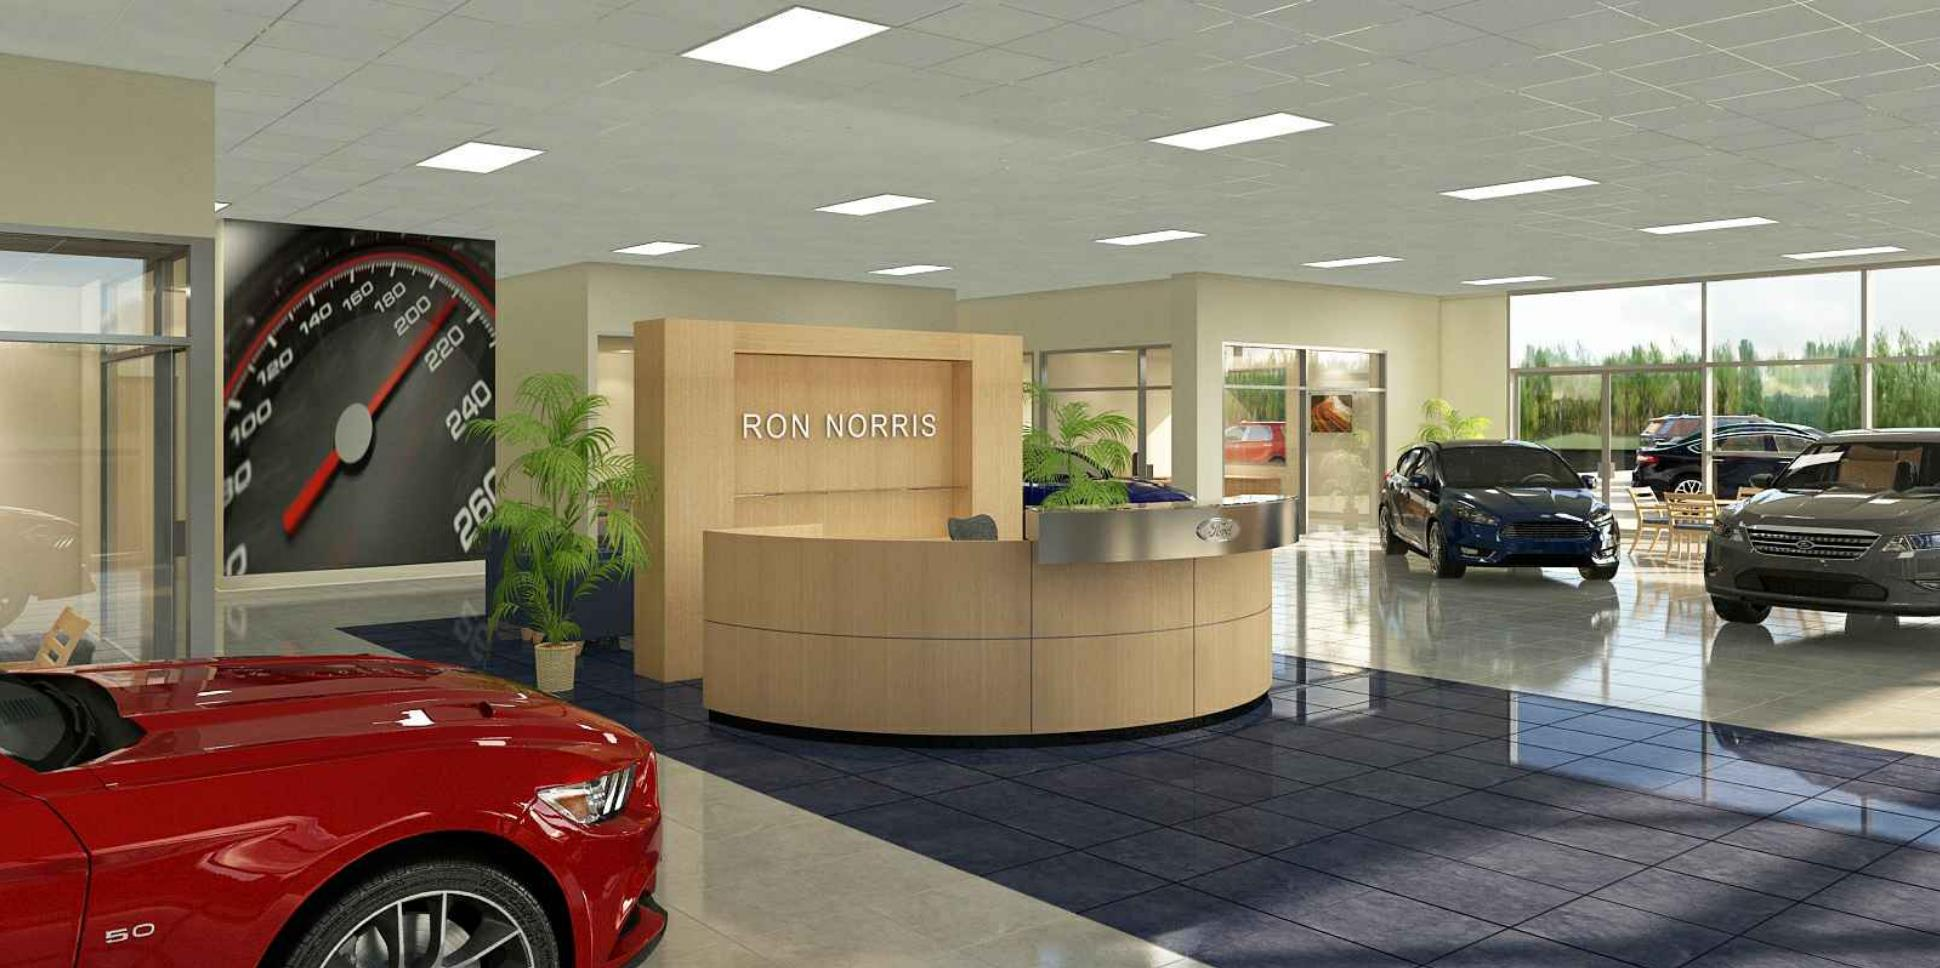 Ron Norris Ford Construction Usville Fl Rush